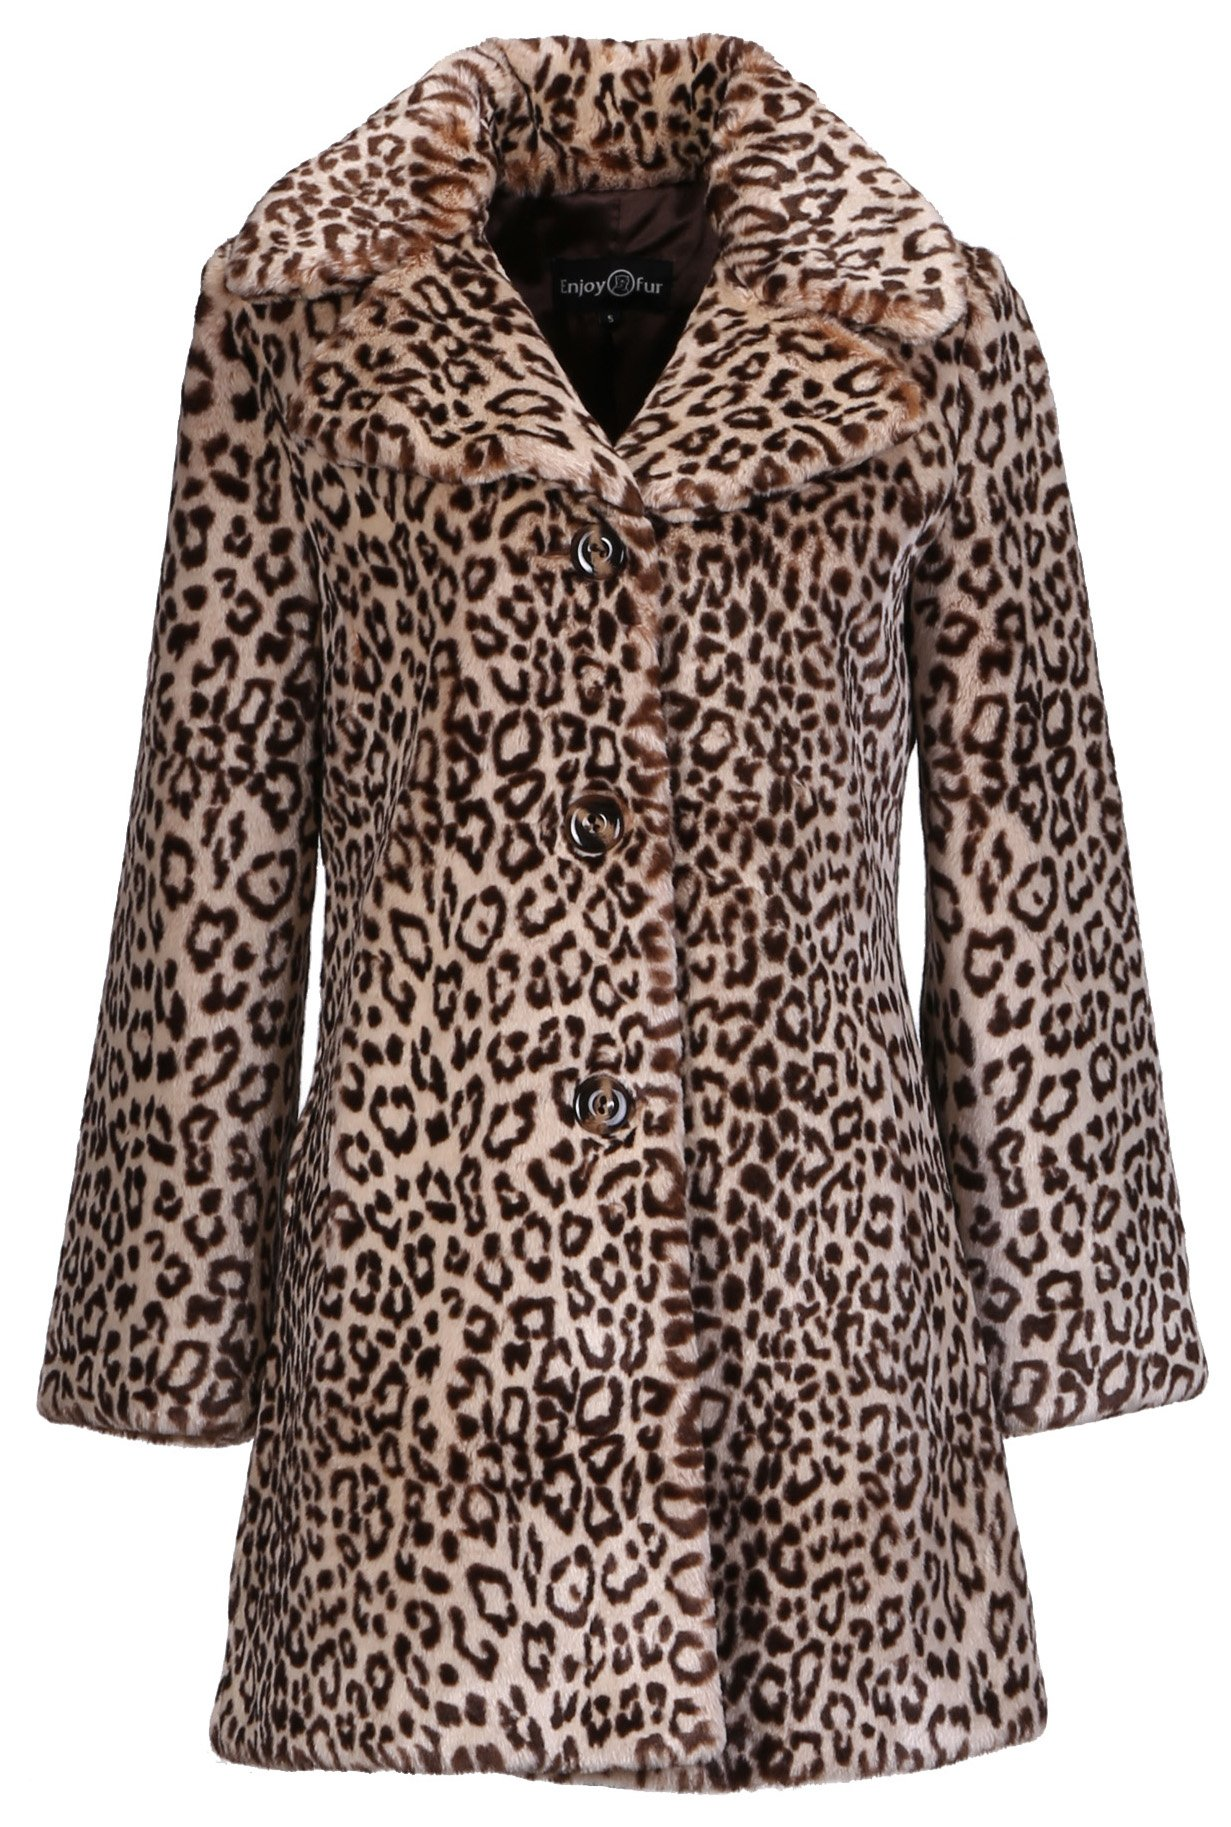 Enjoy Fur Women's Leopard Print New Style Faux Fur Coat (Small)